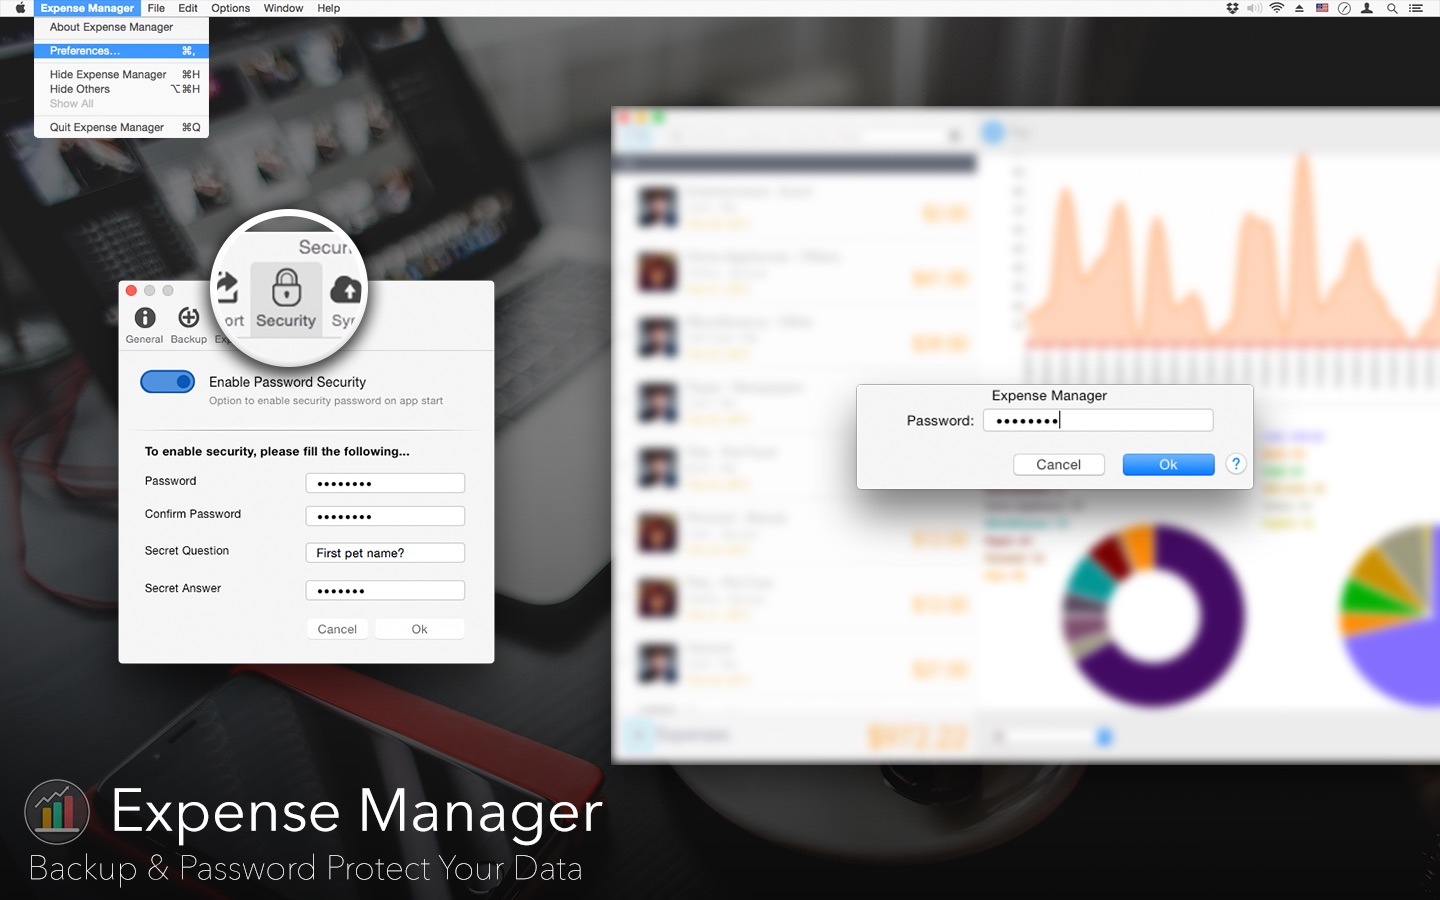 Expense Manager on the Mac App Store